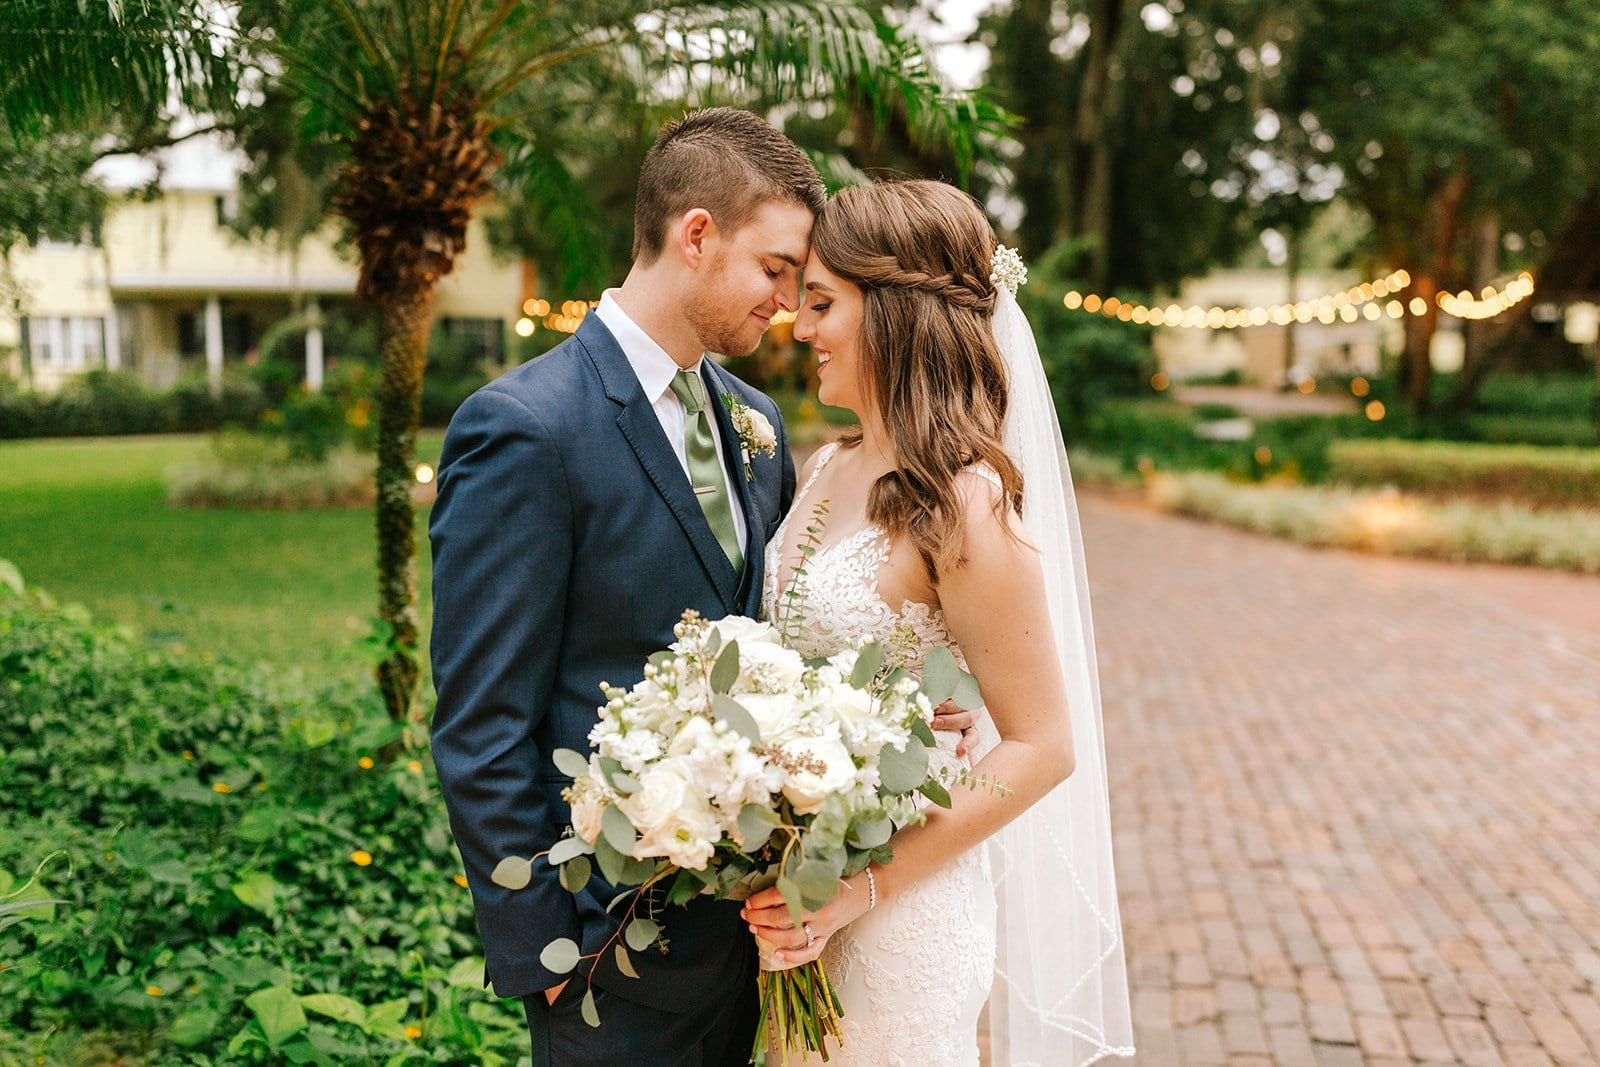 Wedding portraits at the Carriage House Stable